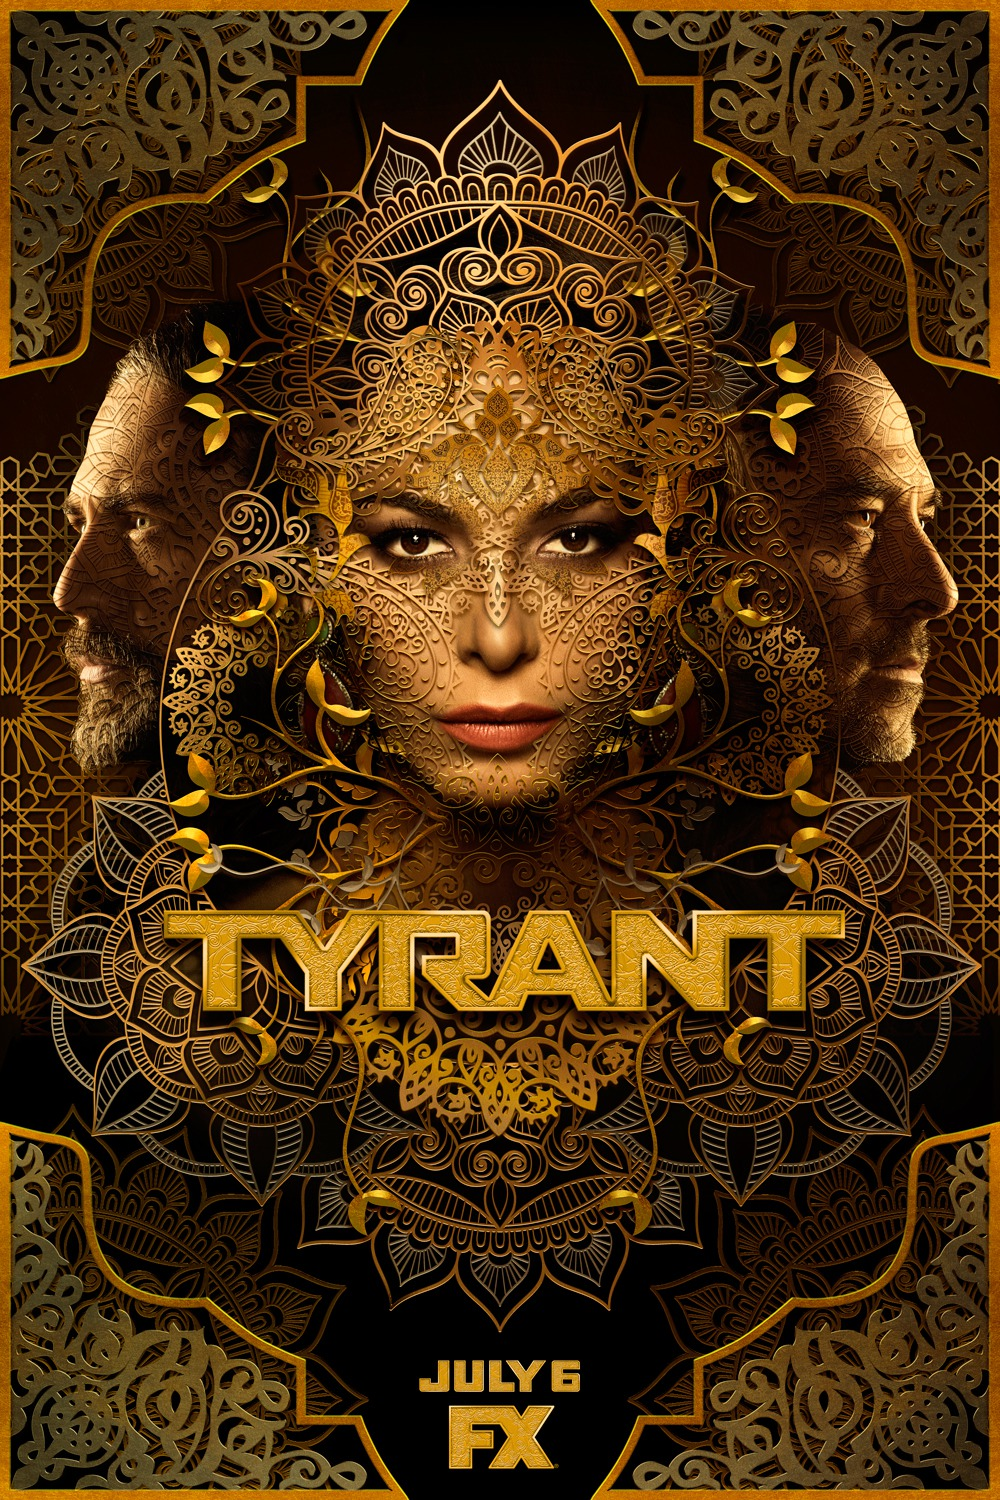 Tyrant streaming